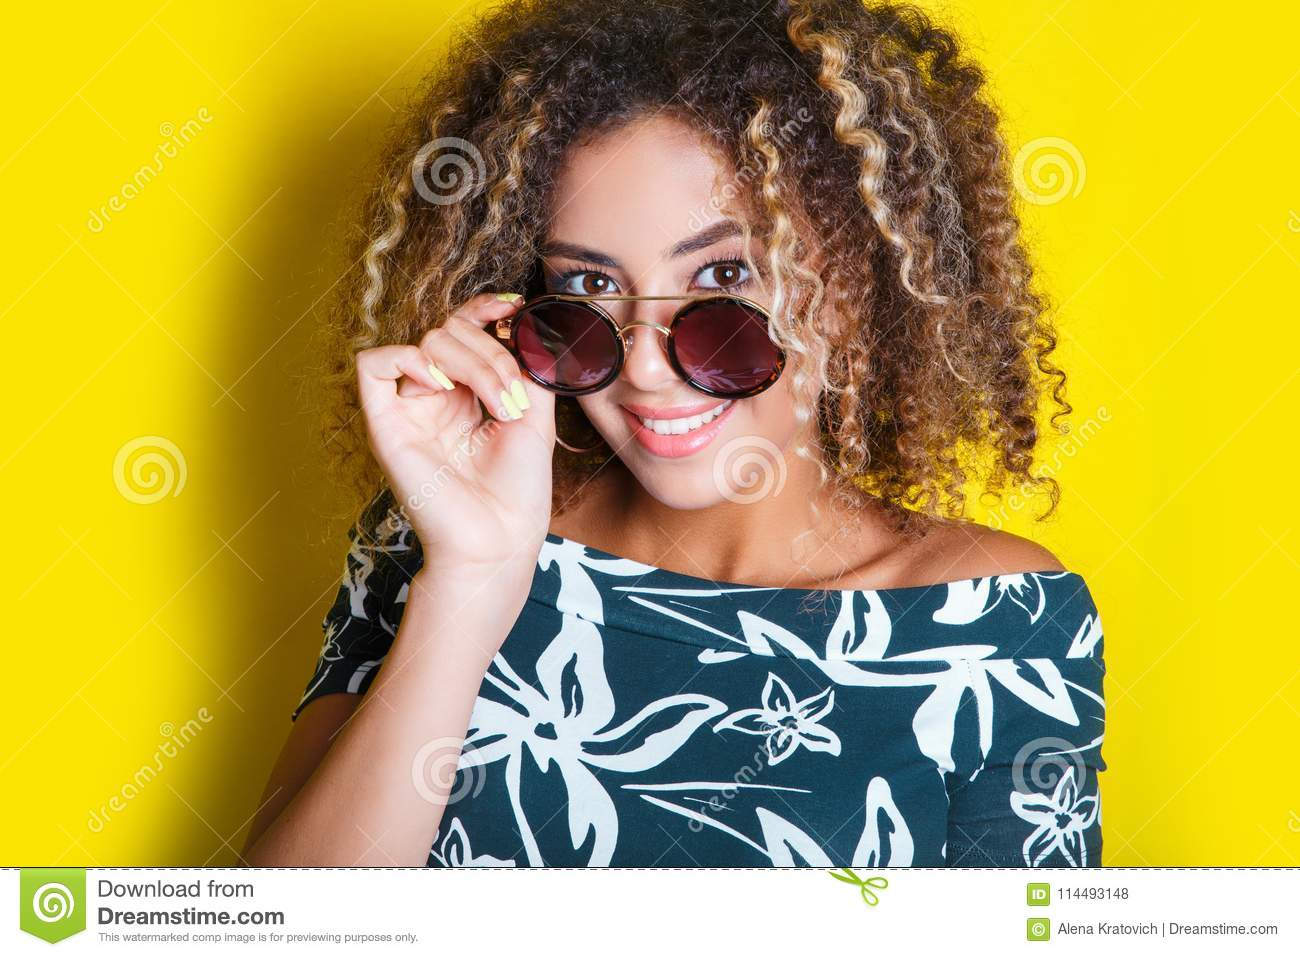 Portrait of a young afro american woman in sunglasses. Yellow background. Lifestyle.